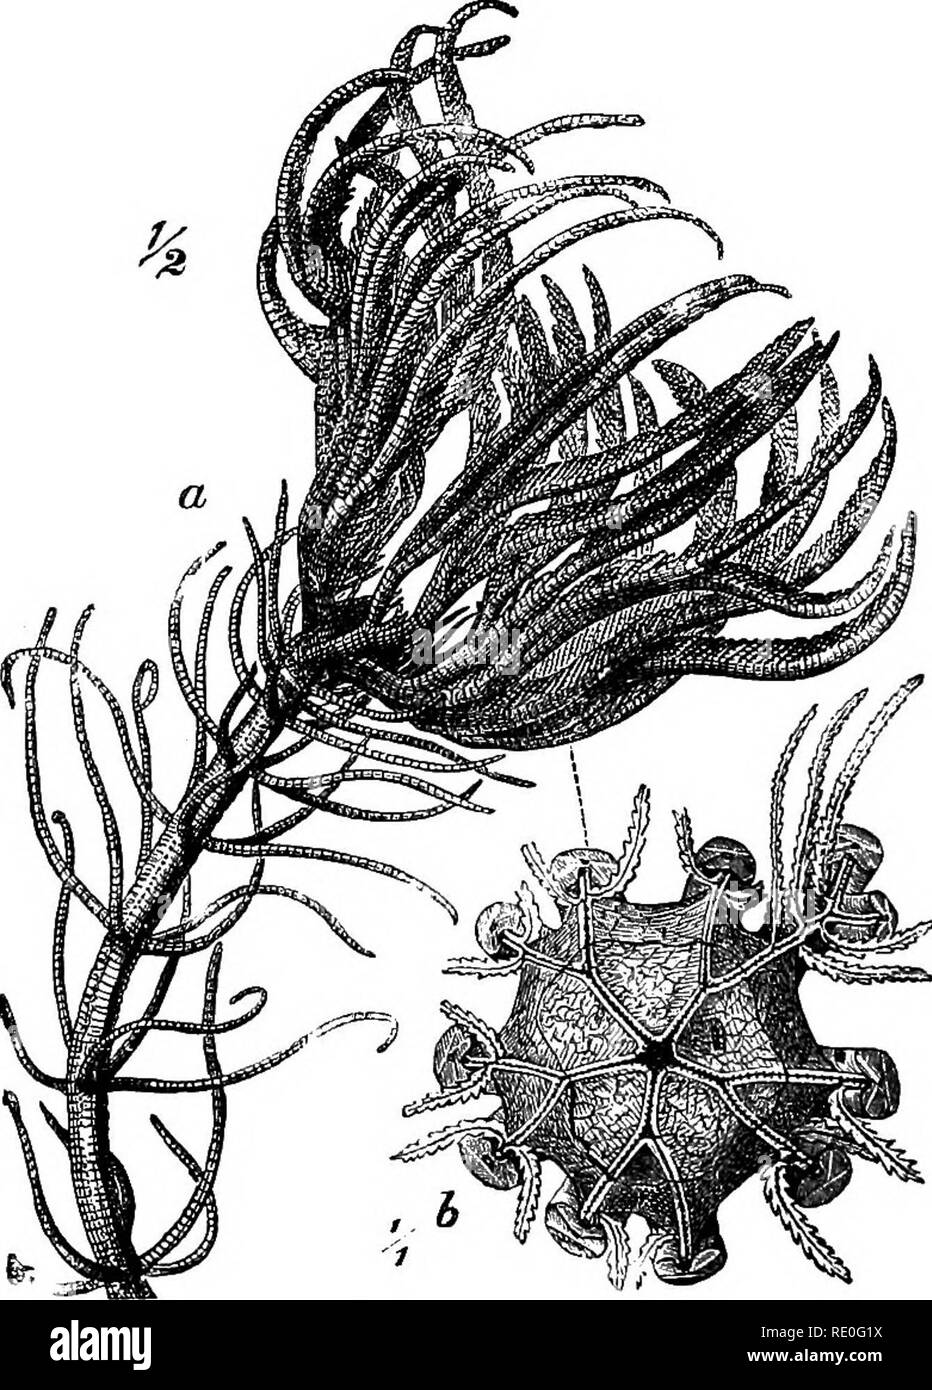 . Zoology for high schools and colleges. Zoology. 103 ZOOLO&Y. to Mhizocrinus, and was dredged in the Bay of Biscay at the depth of 3435 fathoms. B. AldricManus occurred in 1850 fathoms, latitude 1° 47' K, longitude 34° 26' W., off the coast of Brazil. With it and also near the Orozet Islands occurred the interesting Hyocrinus Bethellianus Wyville-Thompson, which bears in some points resemblance to the palasozoic genus, Platycrinus.. Fig. 64.—a, PentacrinuJi caput^medusce, half niitural size; 6, calyx-disk seen from above, natural size.—Prom Brehm's Thlerleben. The most widely distributed  - Stock Image